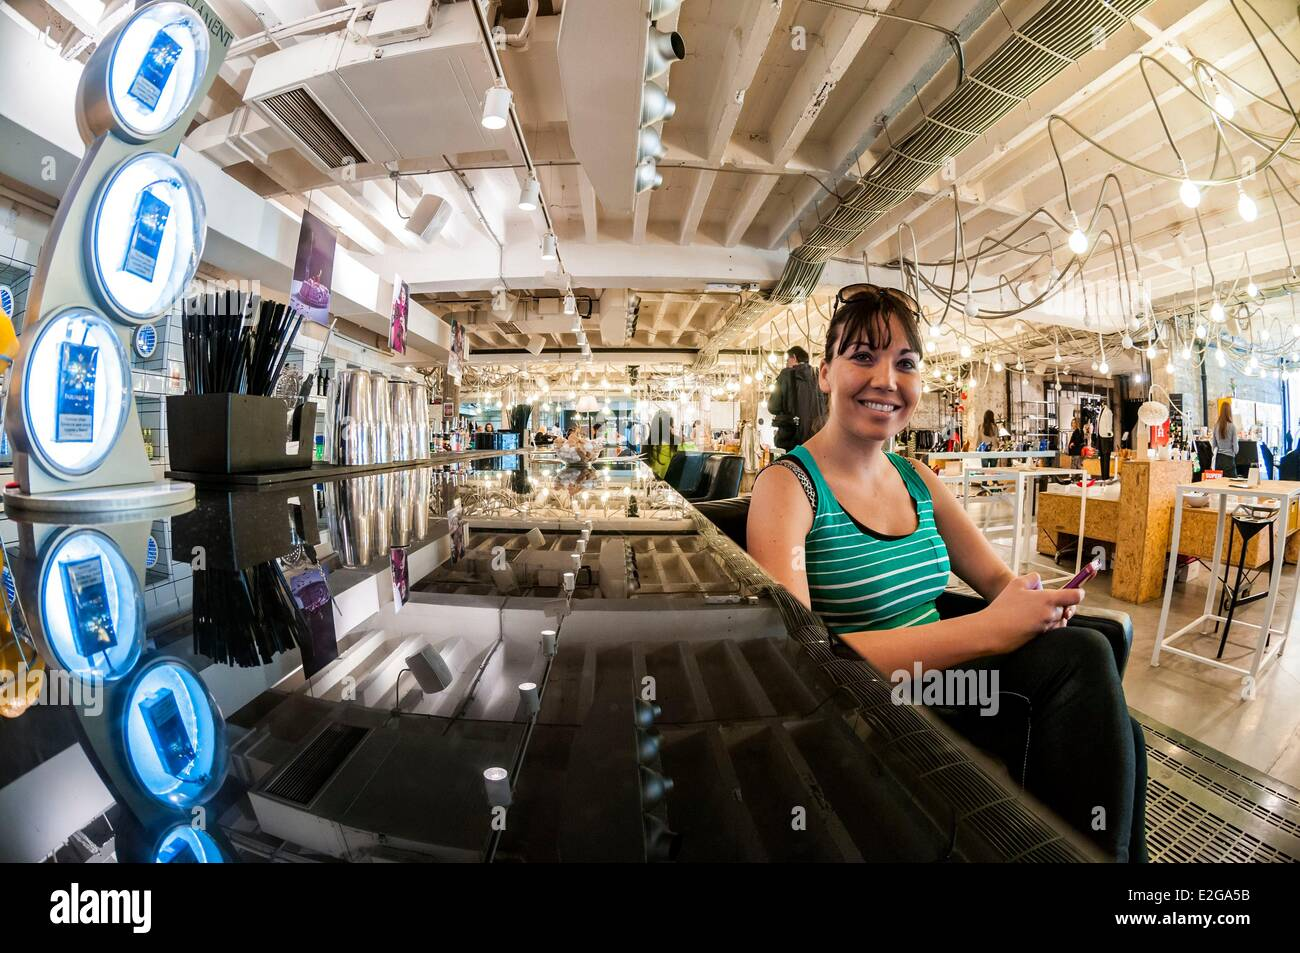 Serbia Belgrade downtown customer inside Supermarket concept store and restaurant - Stock Image